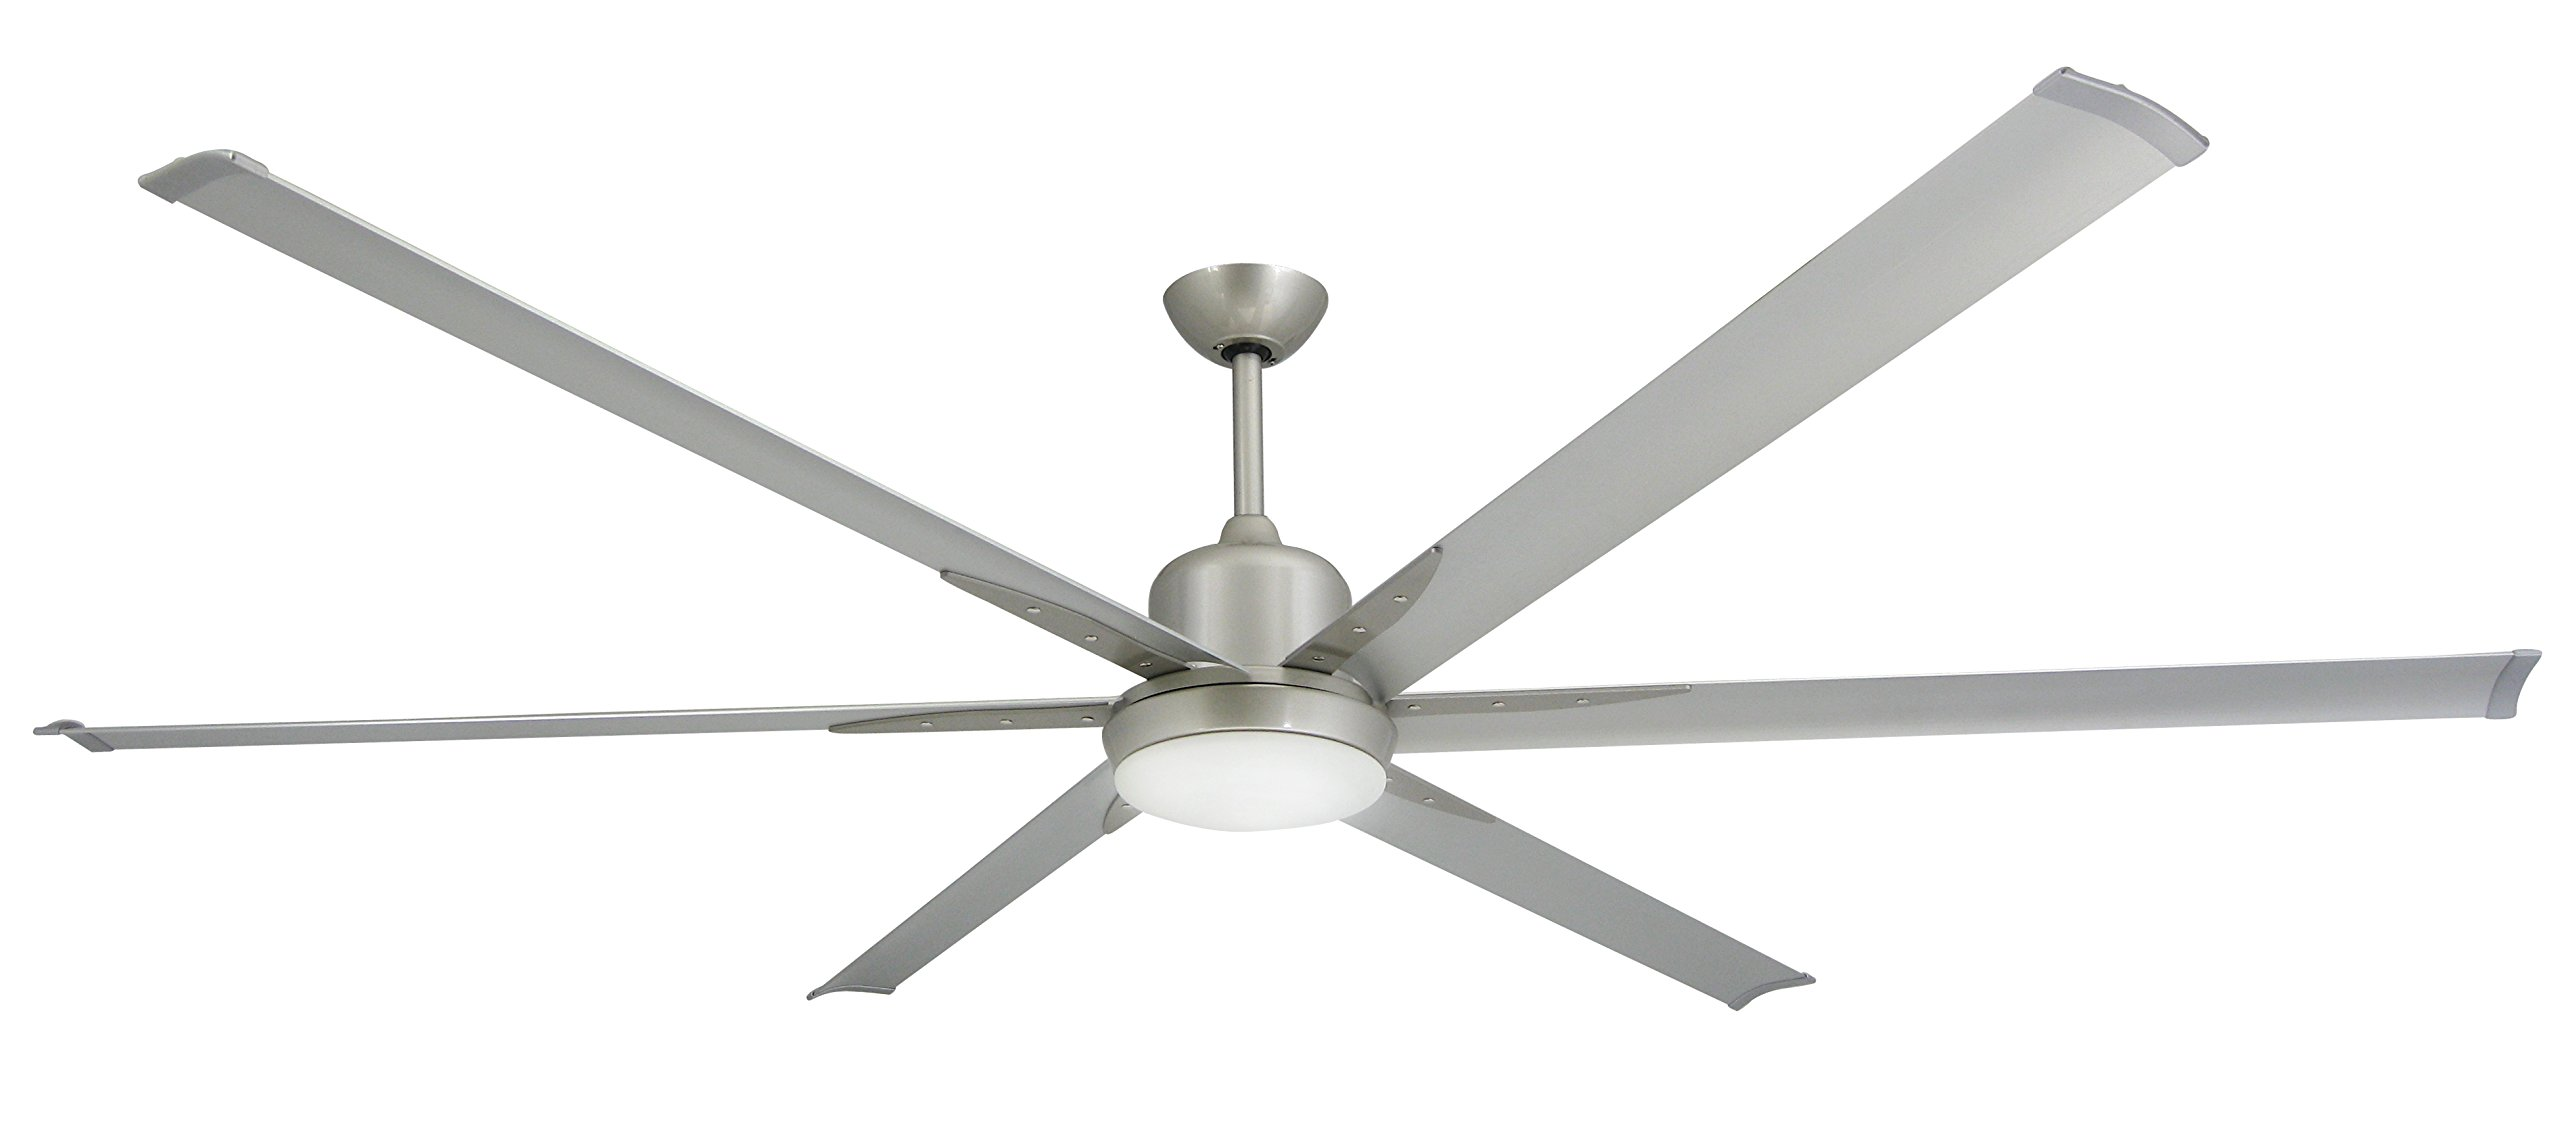 TroposAir Titan Brushed Nickel Large Industrial Ceiling Fan with DC-Motor, 84'' Extruded Aluminum Blades, Integrated Light and Remote